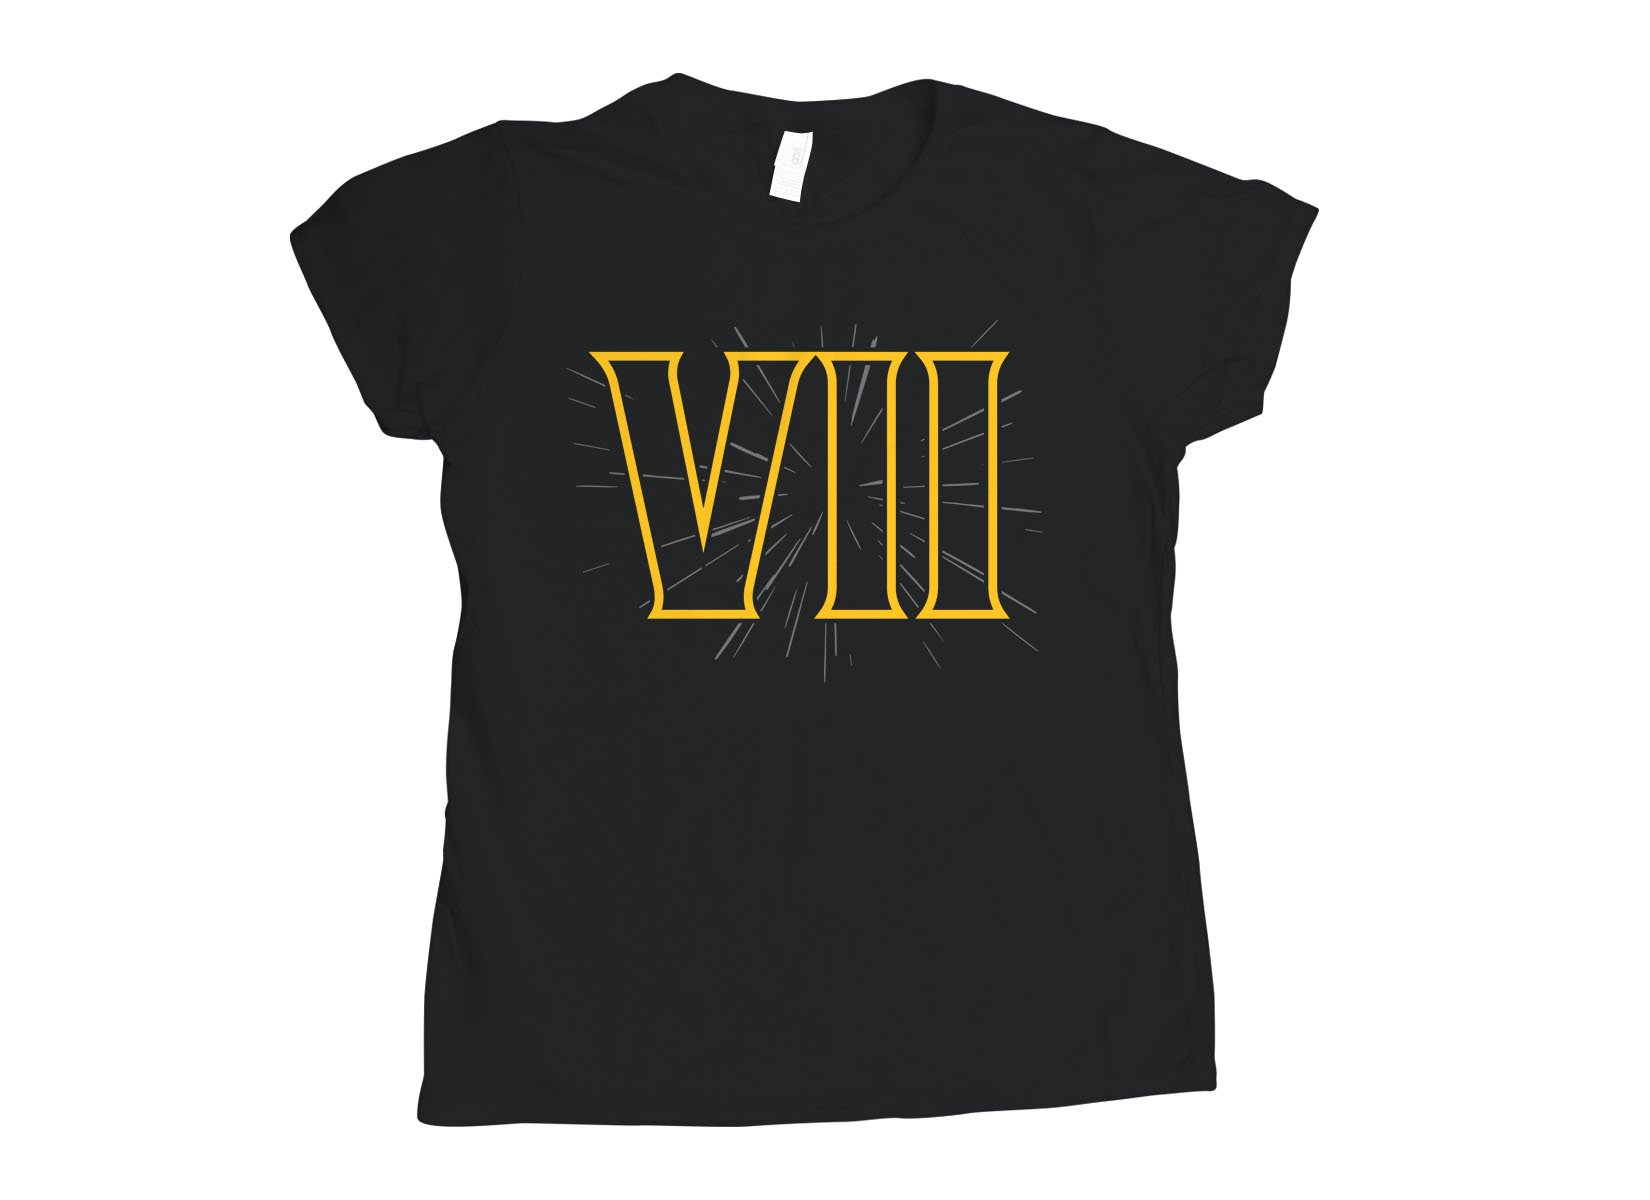 Episode VII on Womens T-Shirt